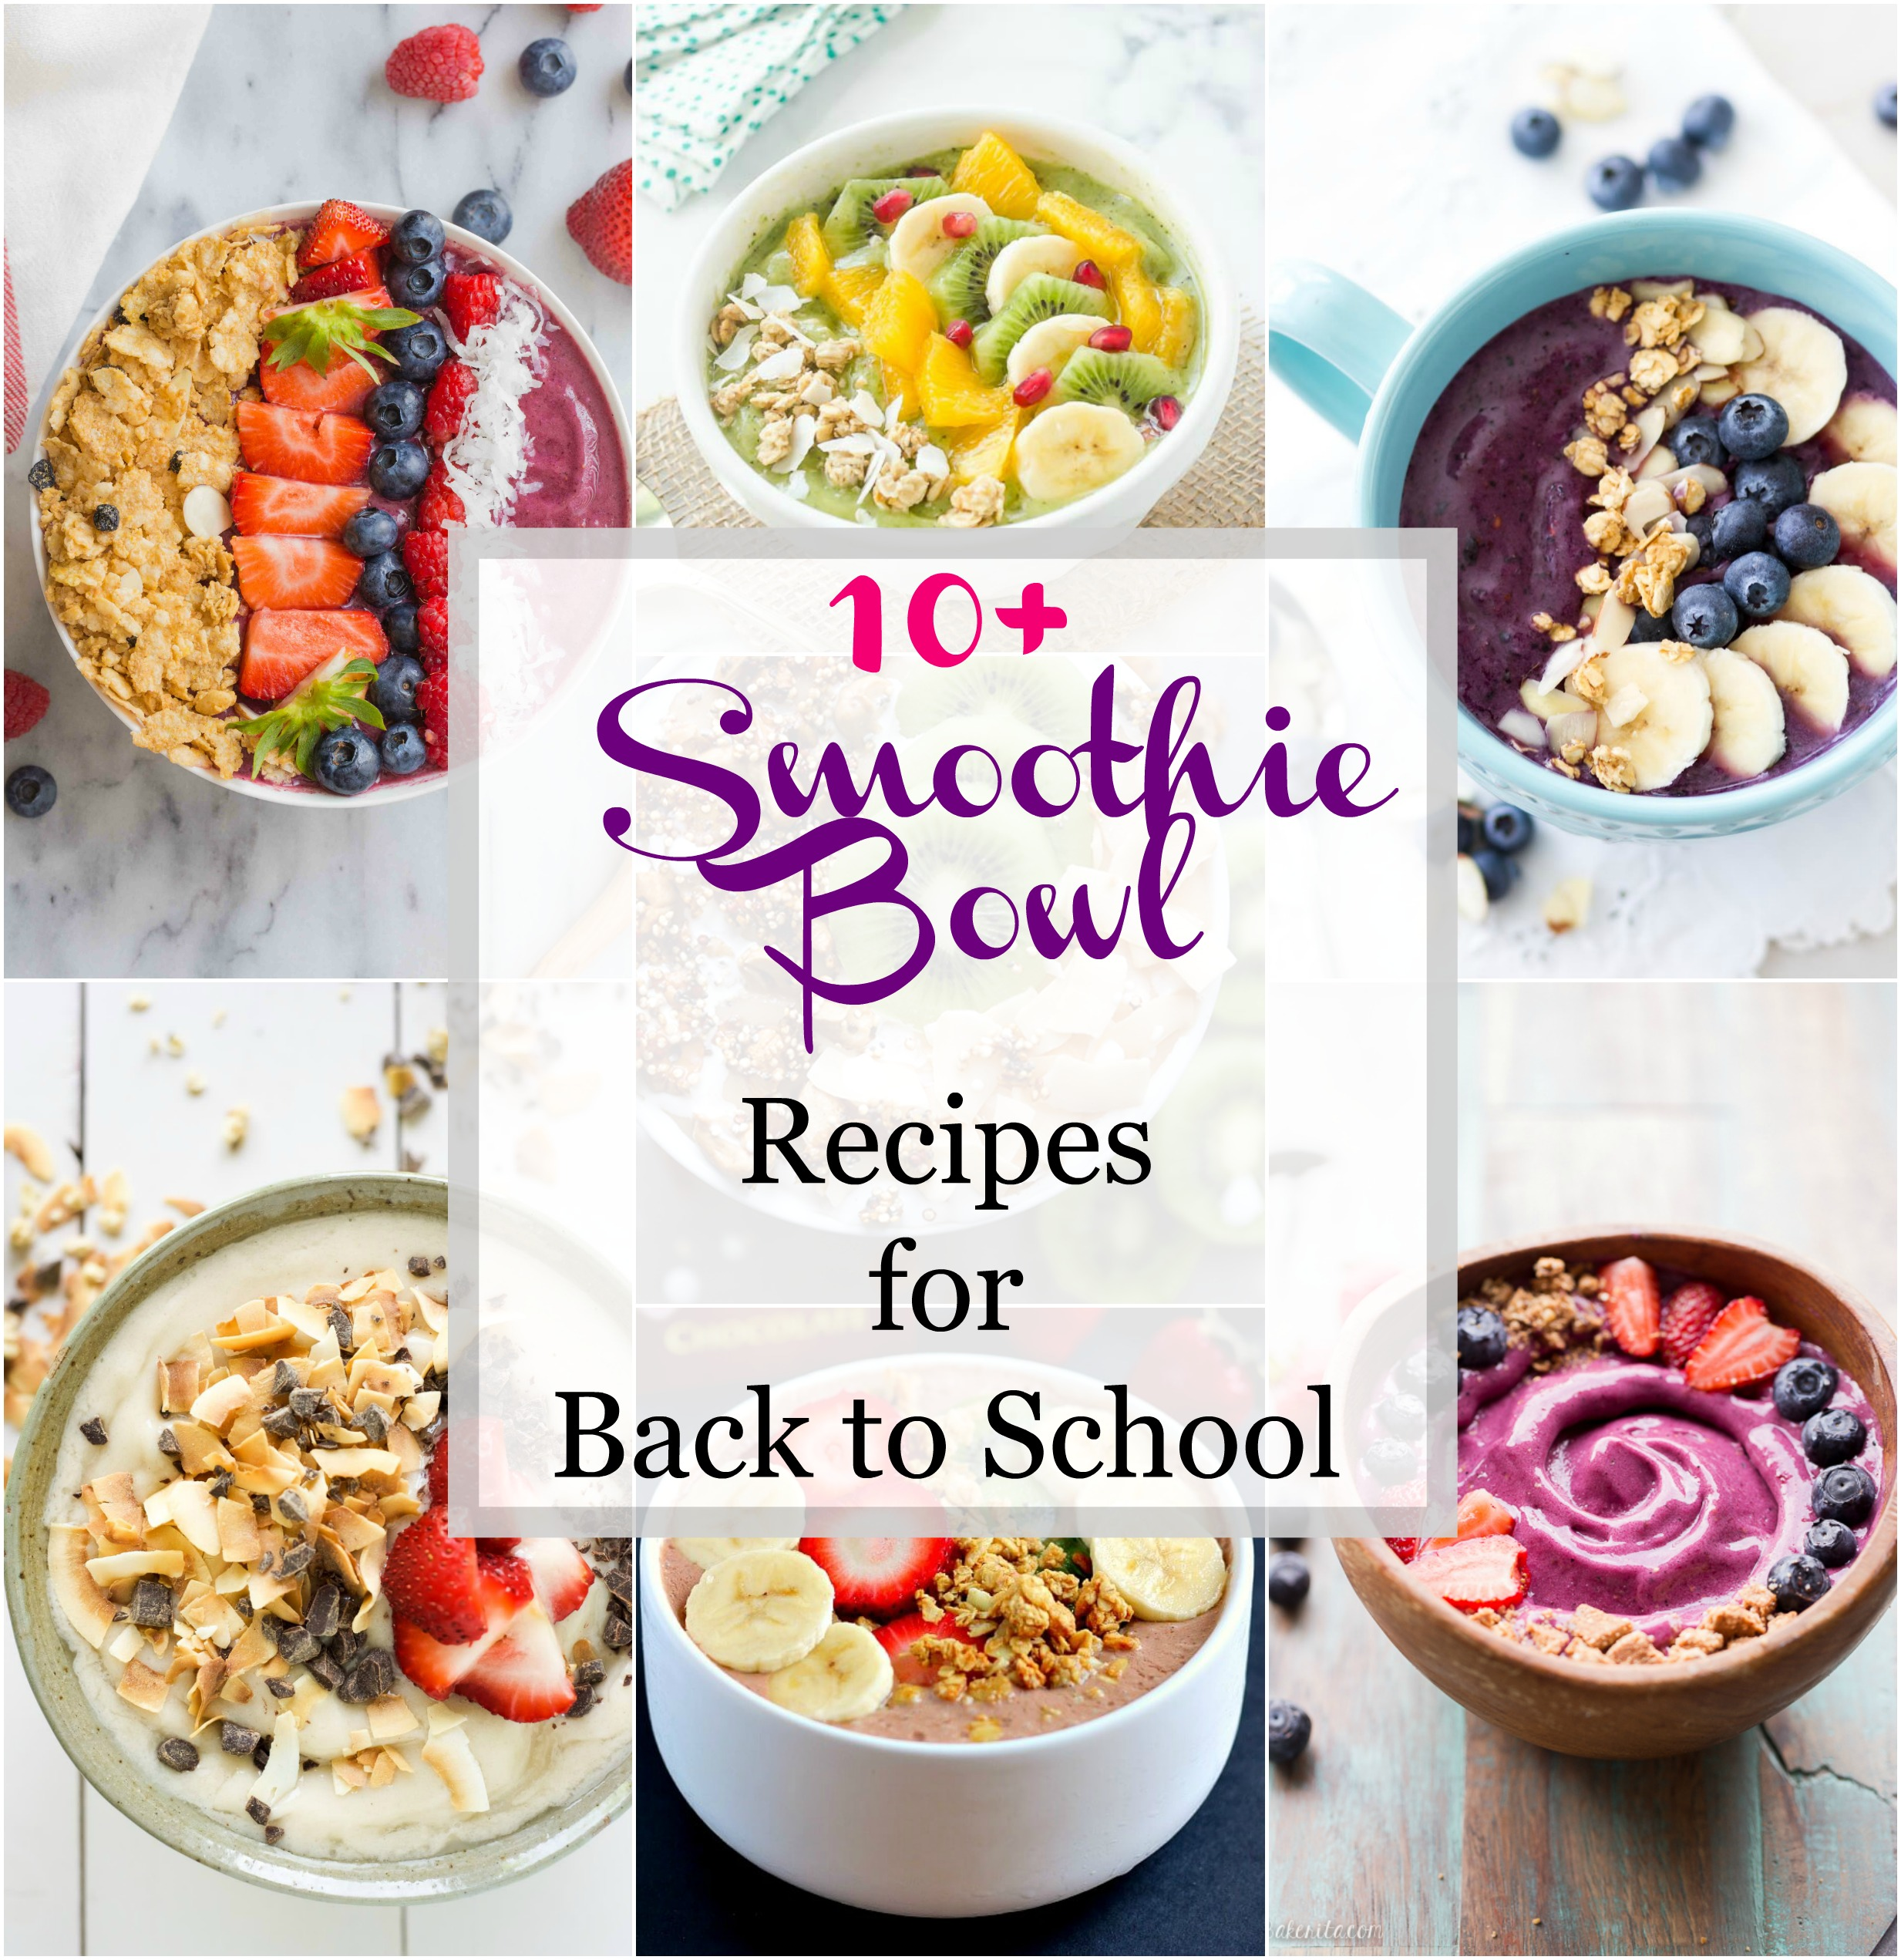 Smoothie Bowl Recipes for Back to School